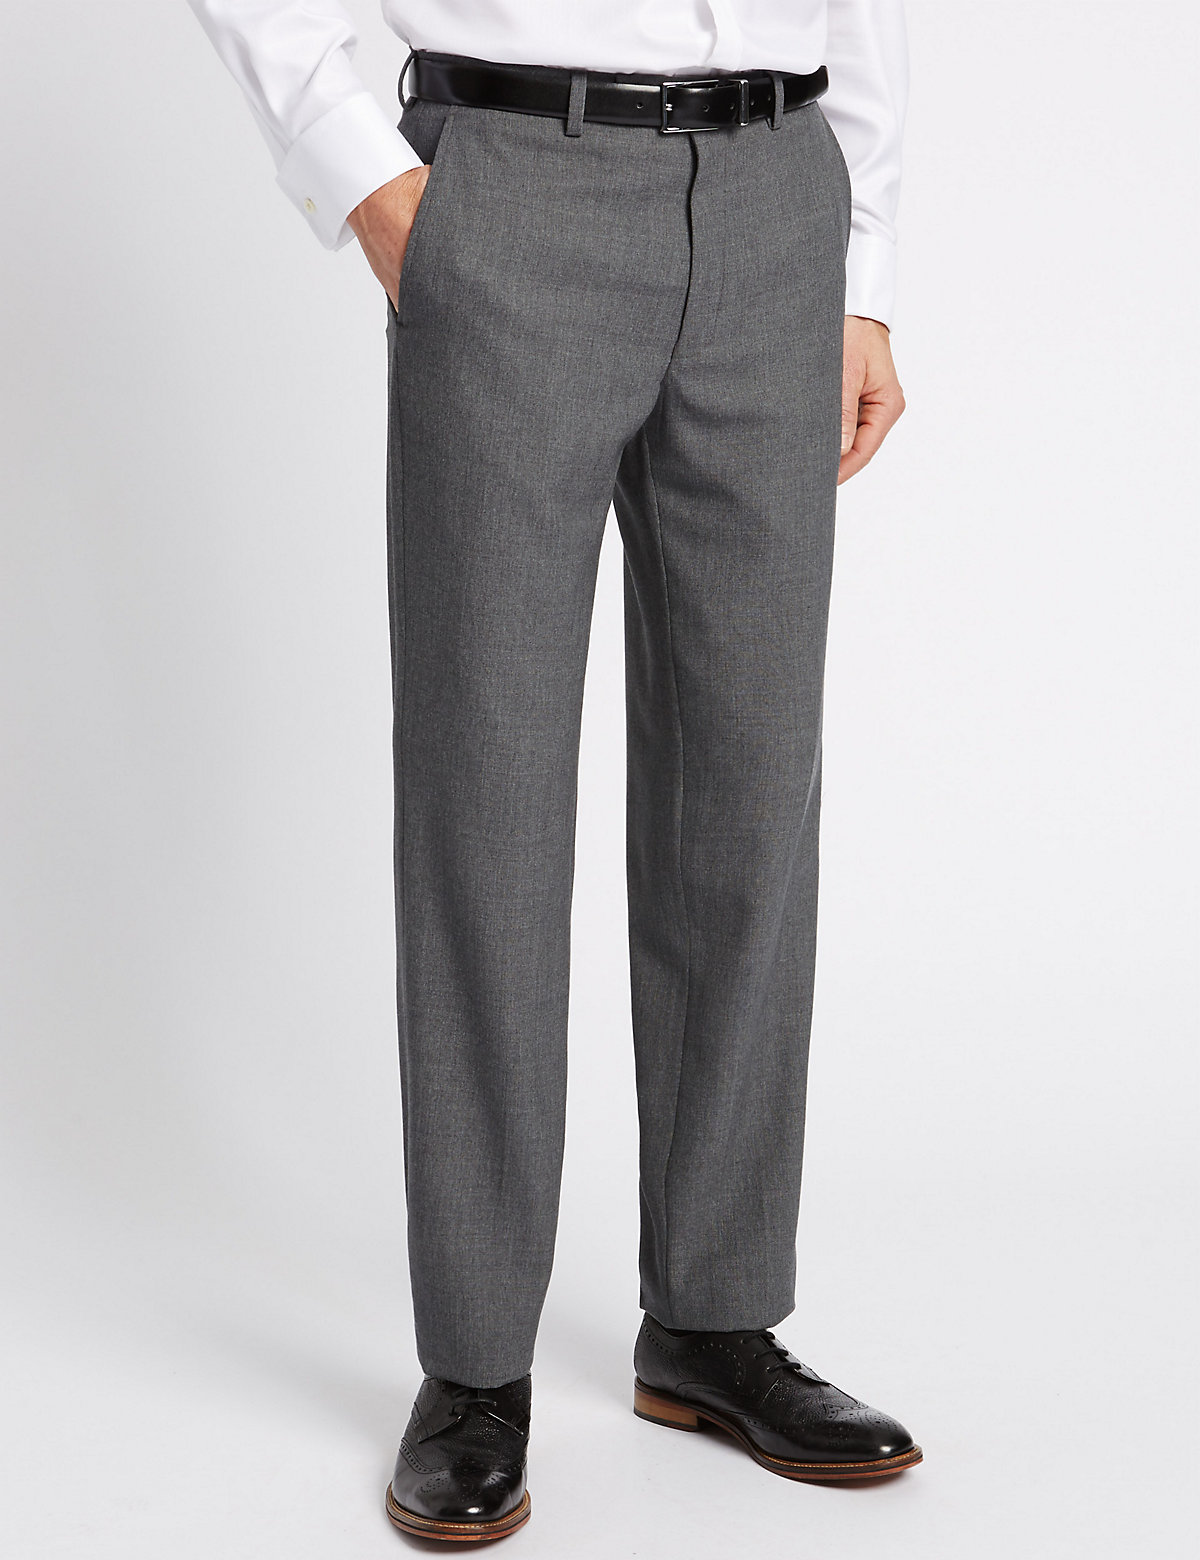 Savile Row Inspired Grey Tailored Fit Trousers